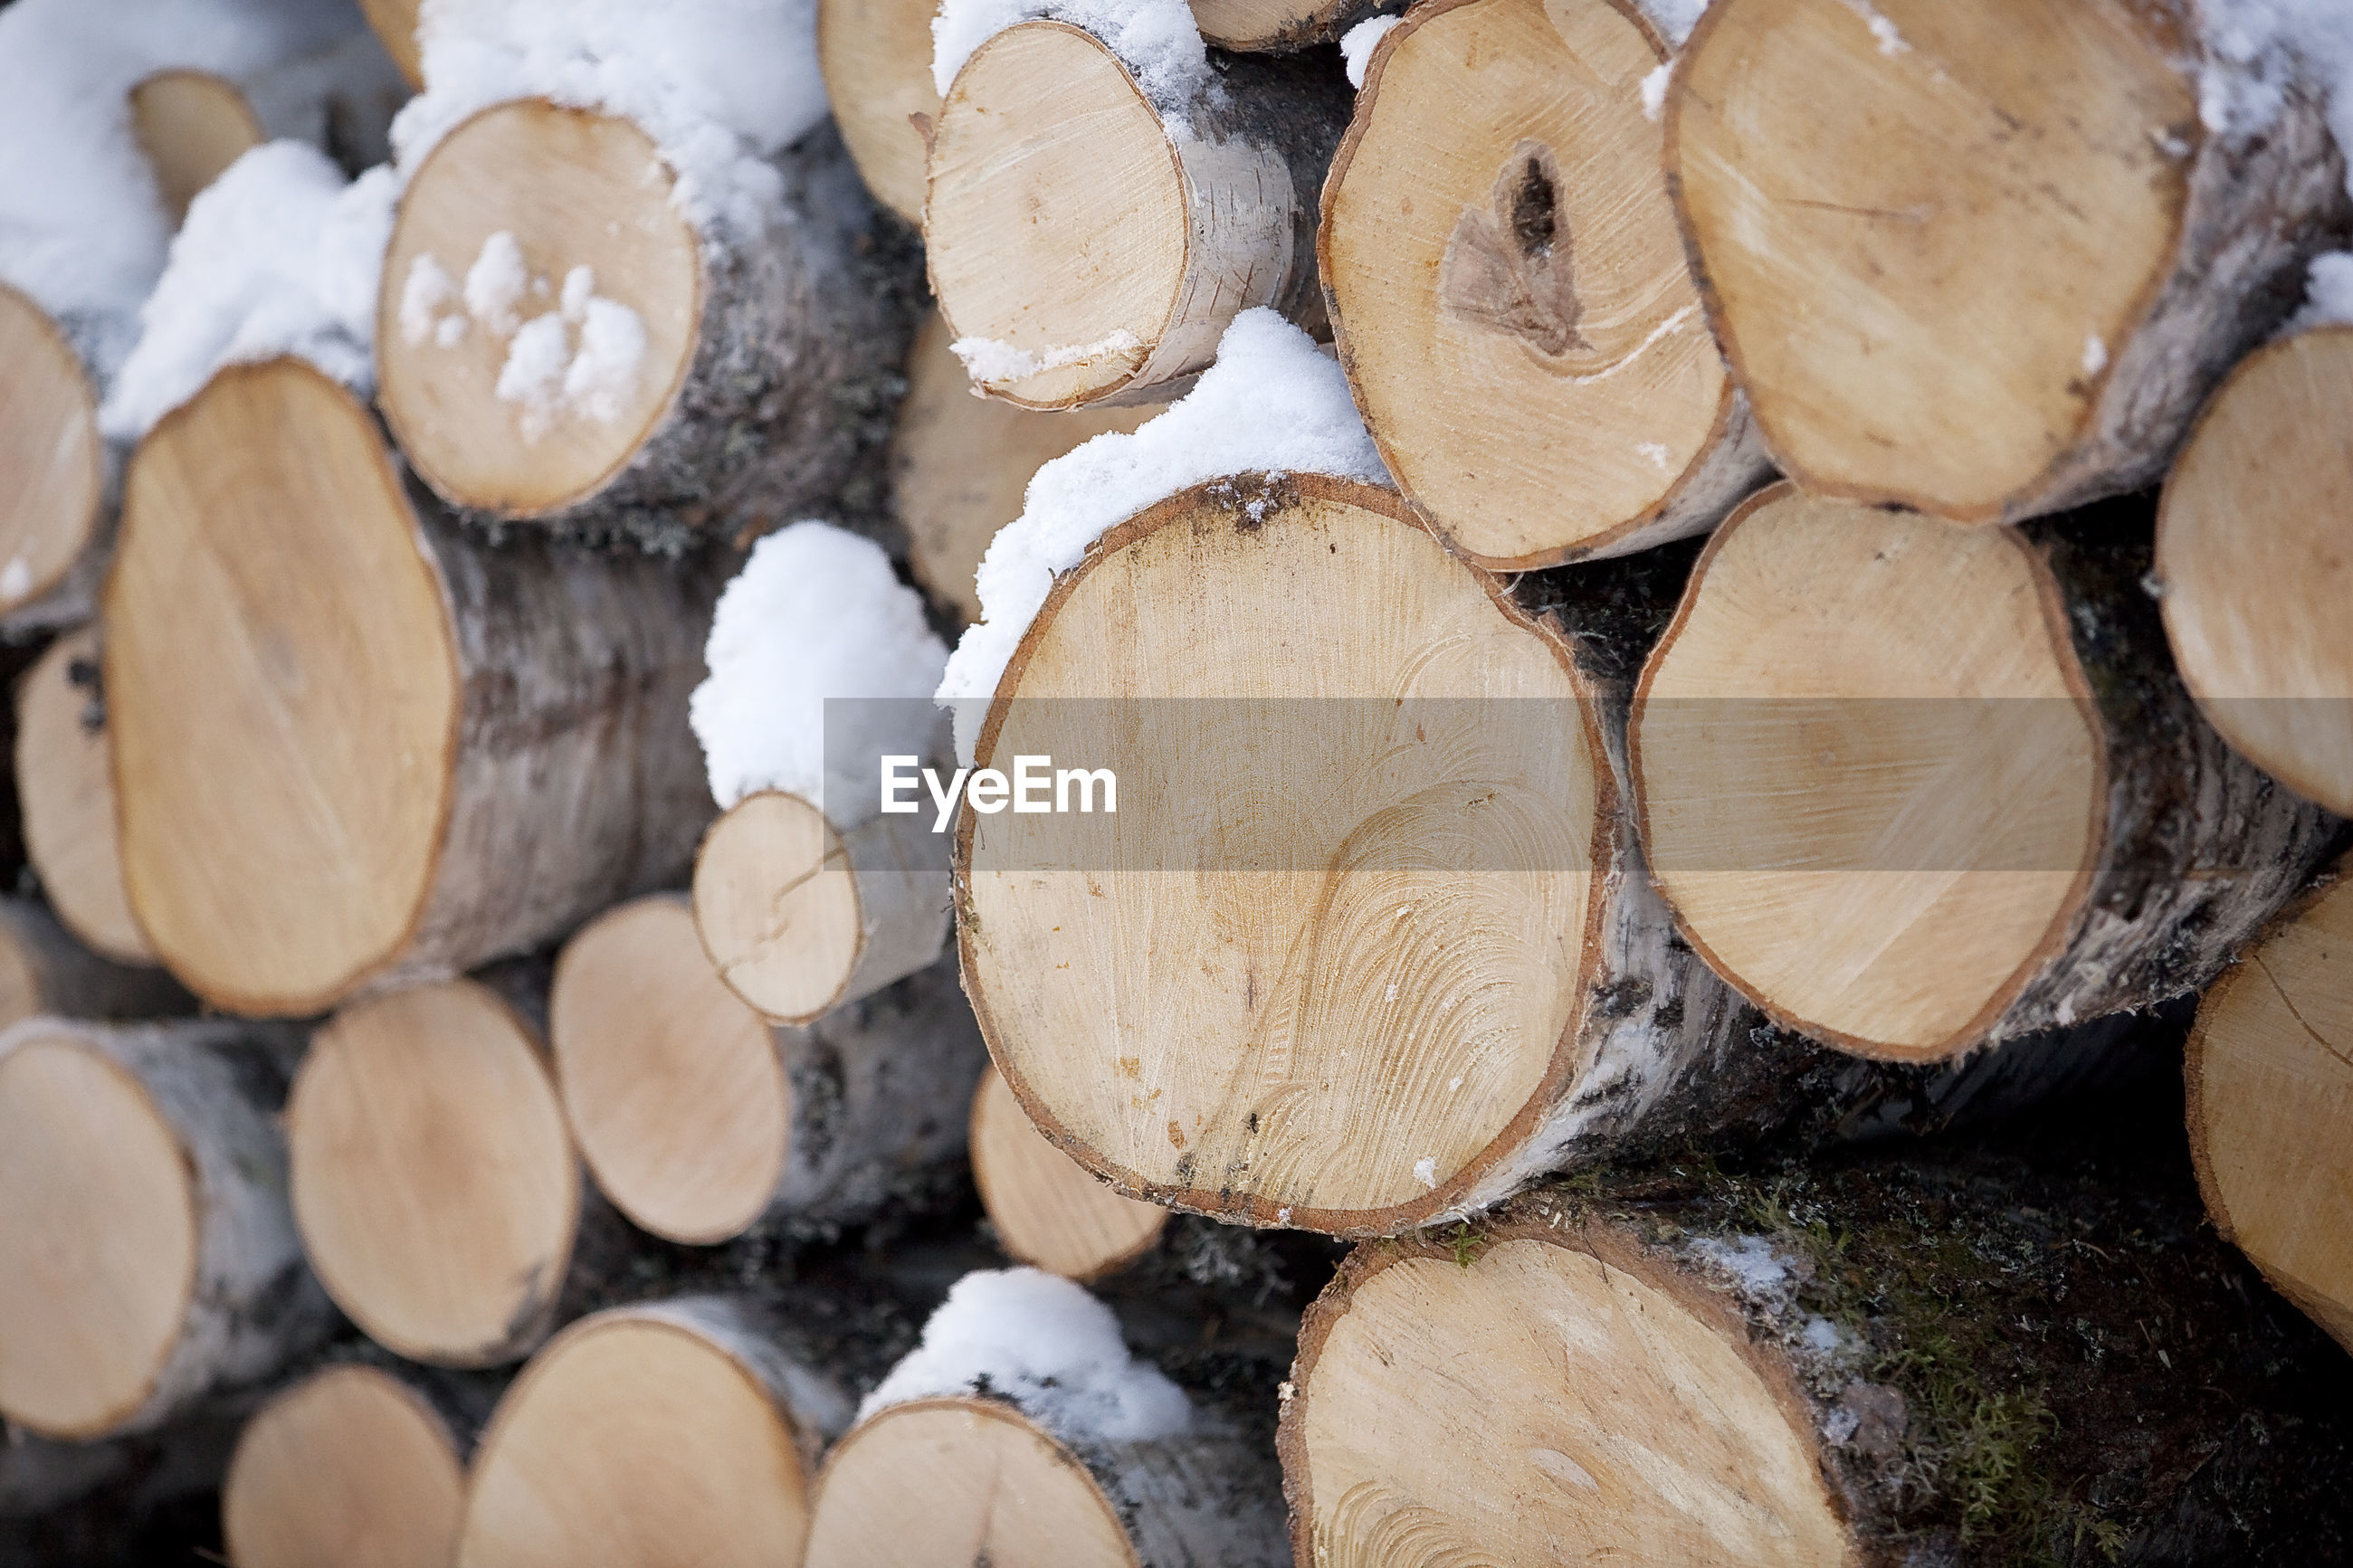 FULL FRAME SHOT OF LOGS AND FIREWOOD